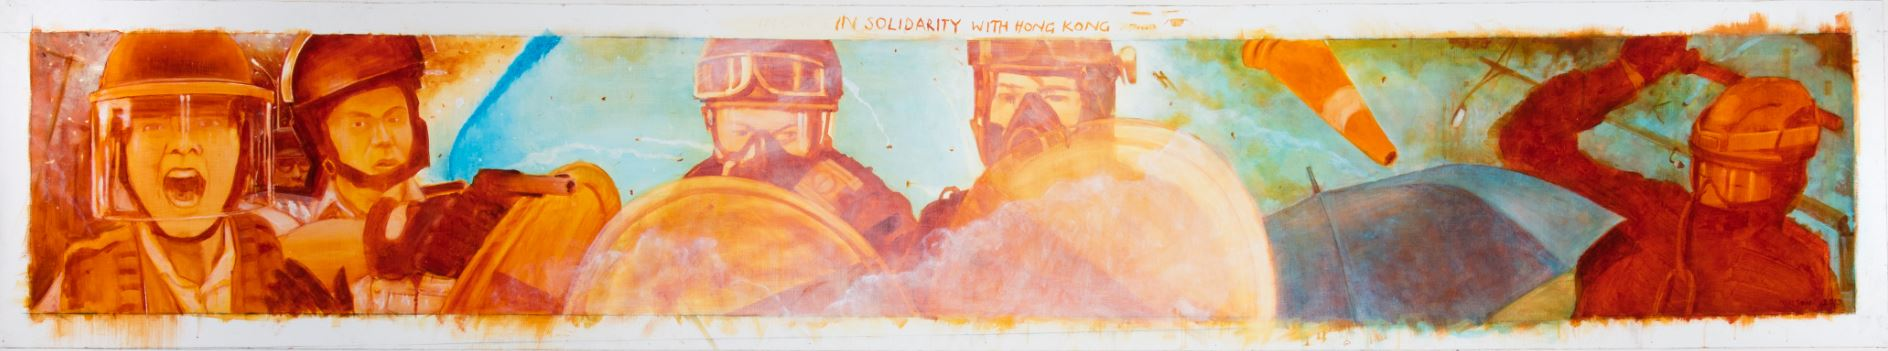 In solidarity with Hong Kong protesters